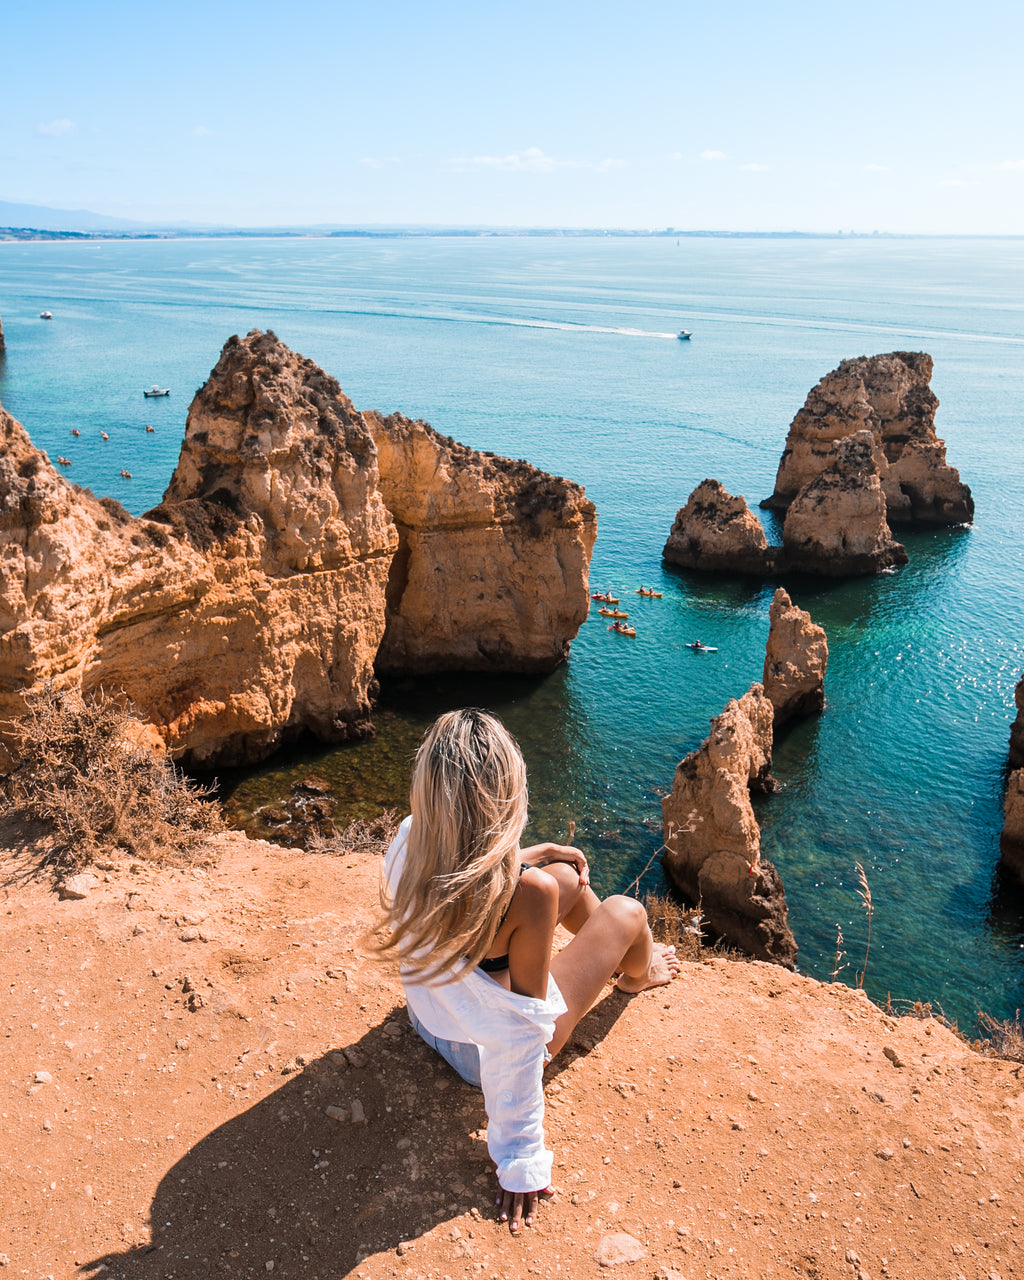 BTS # 5-  Portugal Road Trip: Ponta da Piedade Viewpoint